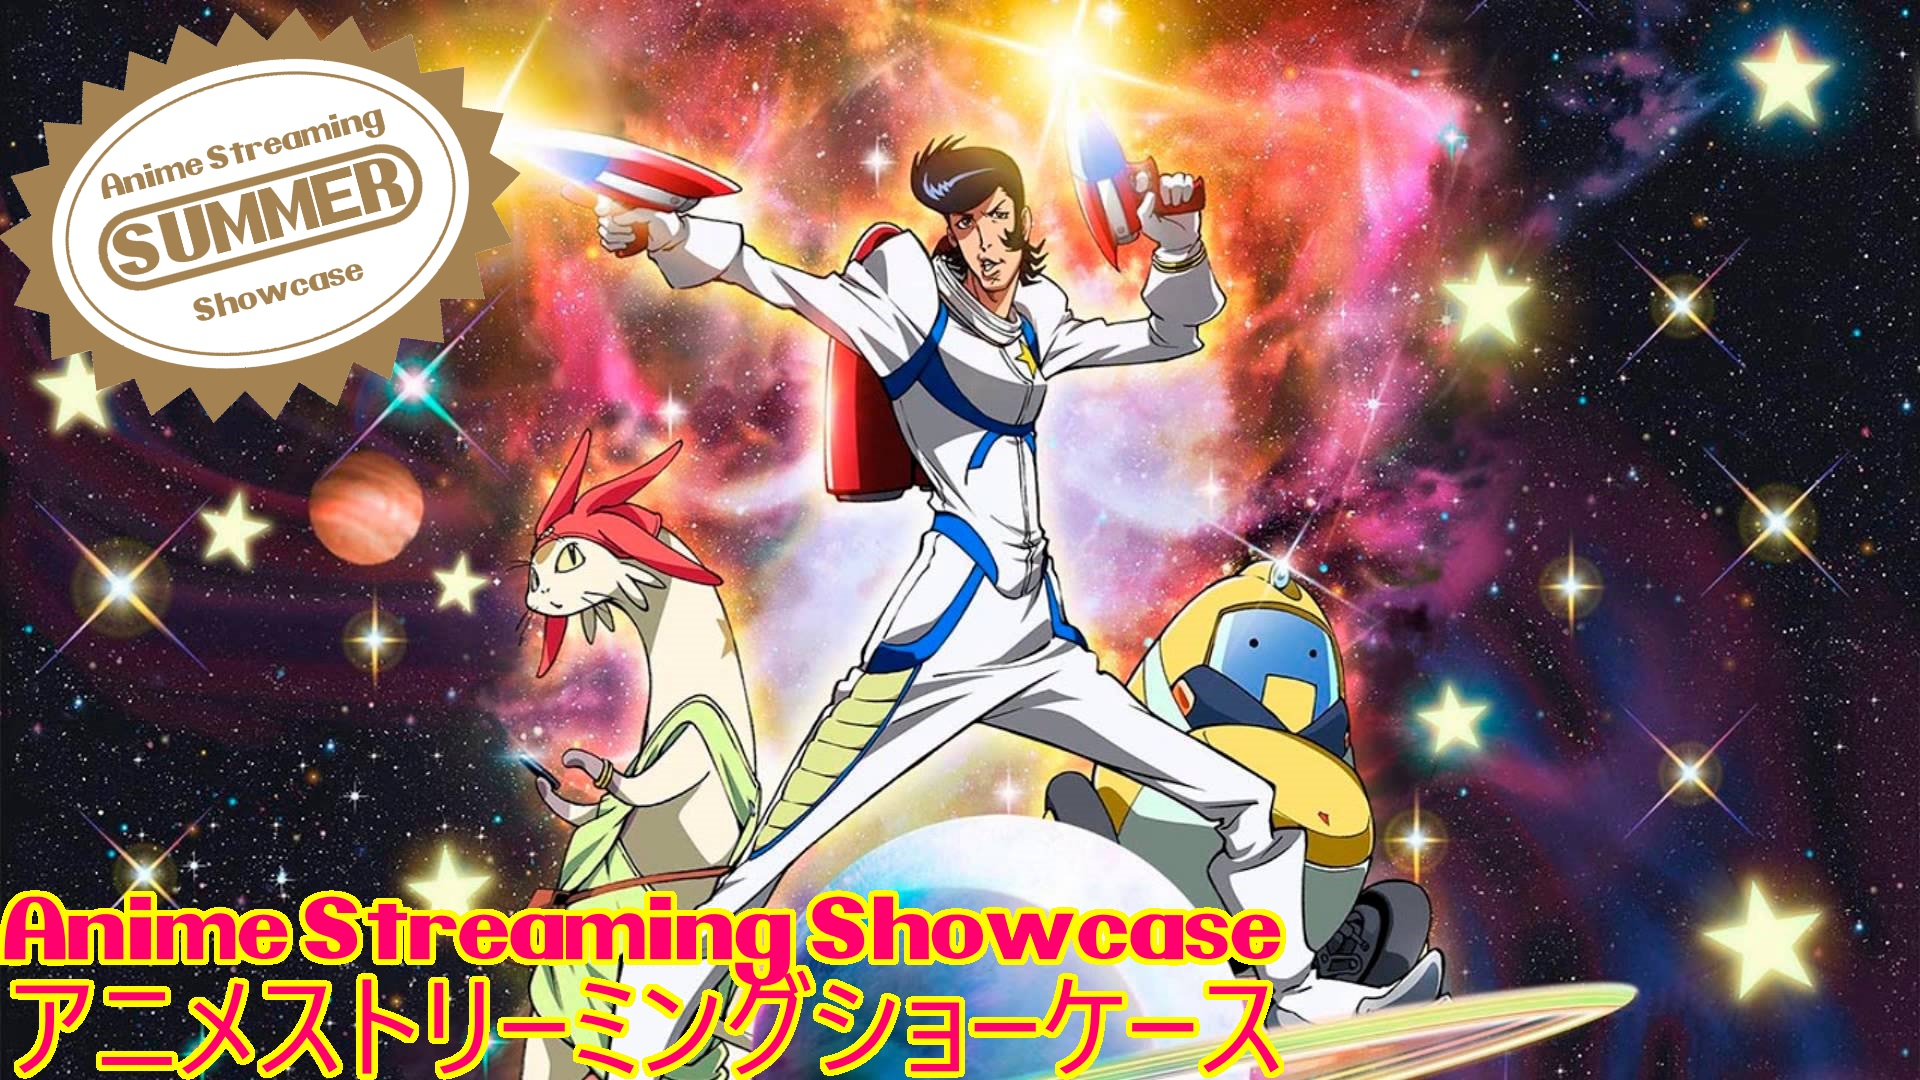 Space Dandy, Anime Streaming Showcase, Anime, Manga, Youtube, video,Shinichiro Watanabe, Toonami, Funimation,